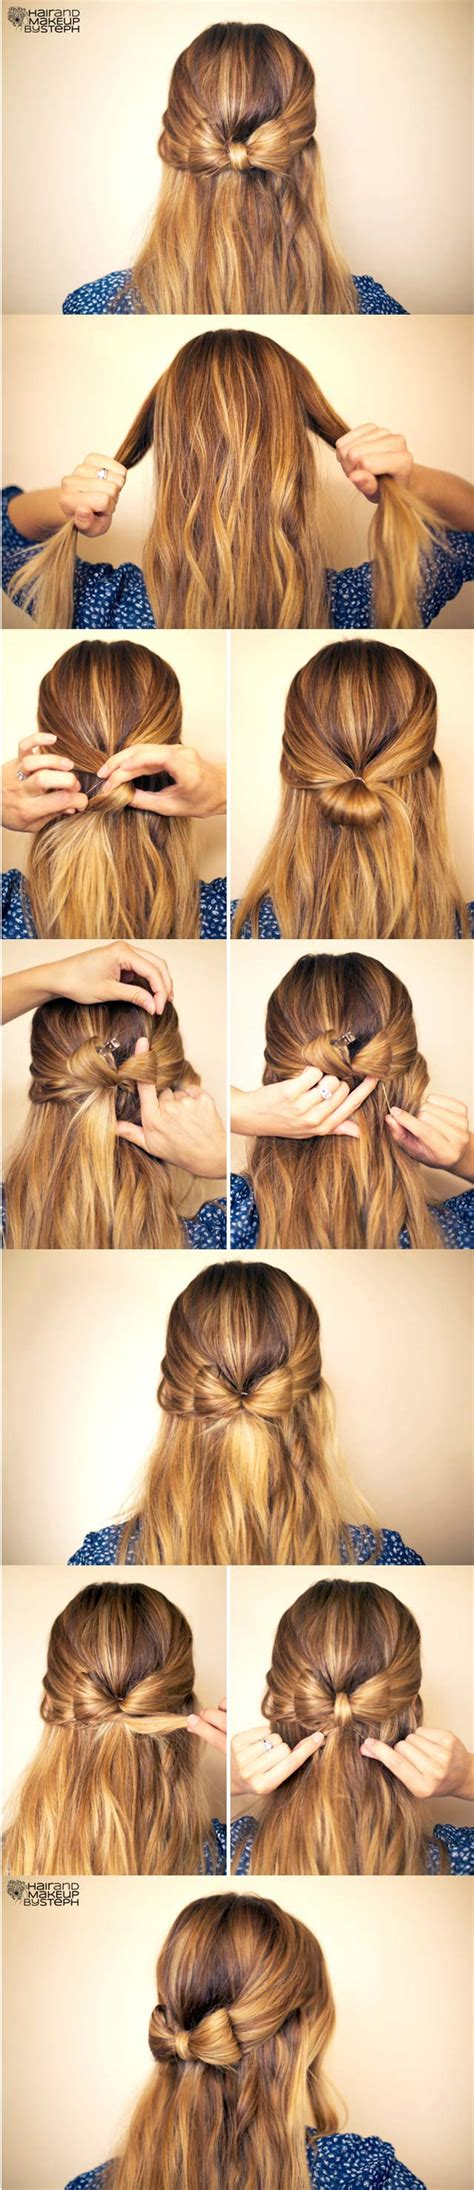 Diy Easy Hairstyles Step By Step | diy your step by step for the best cute hairstyles